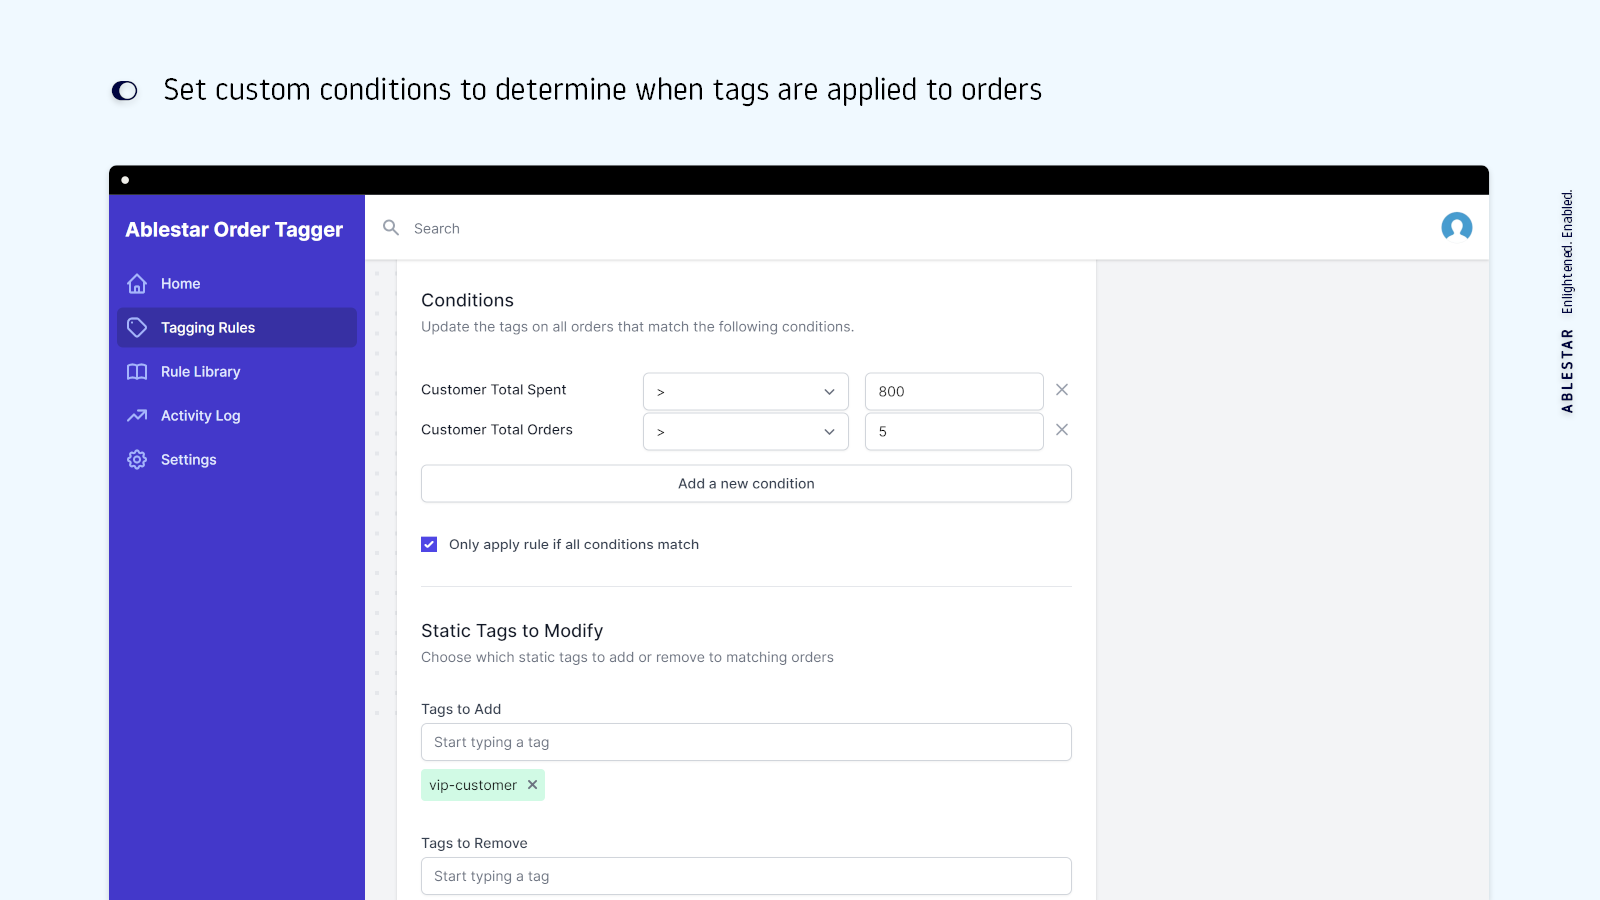 Set custom conditions to determine when tags are applied